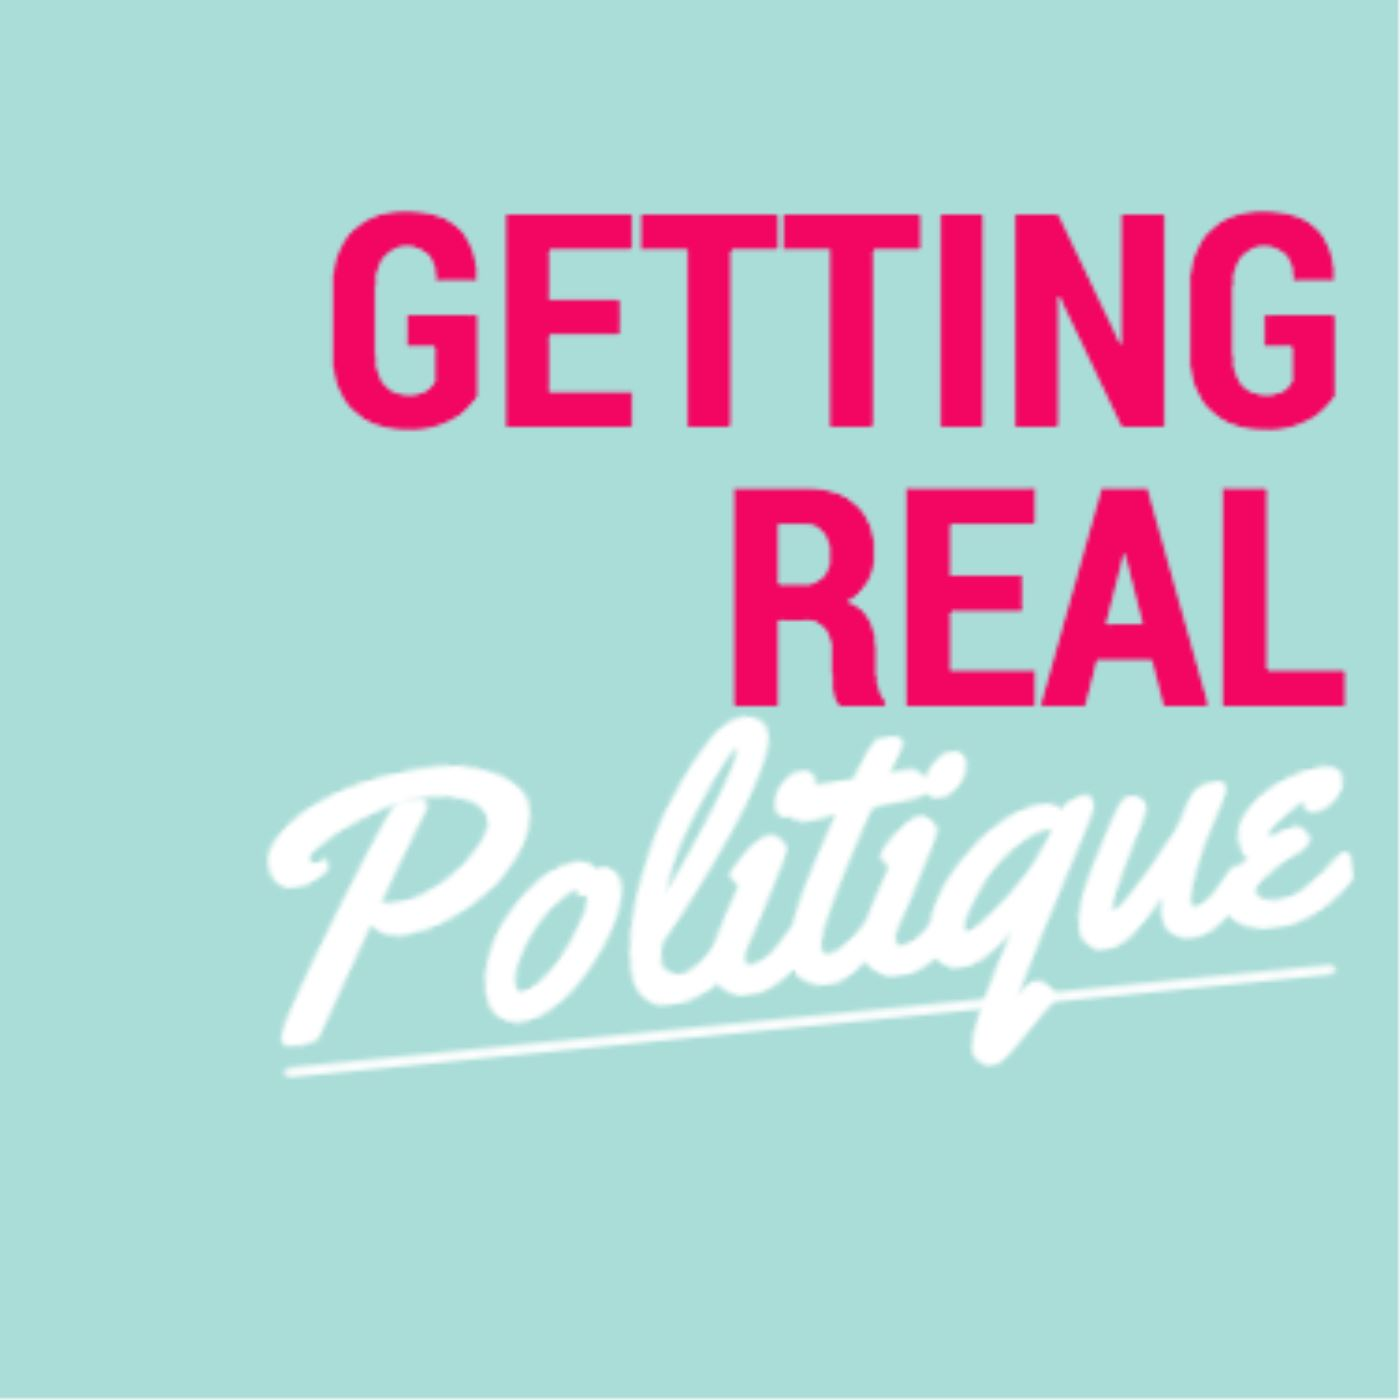 Episodes - Getting Real Politique